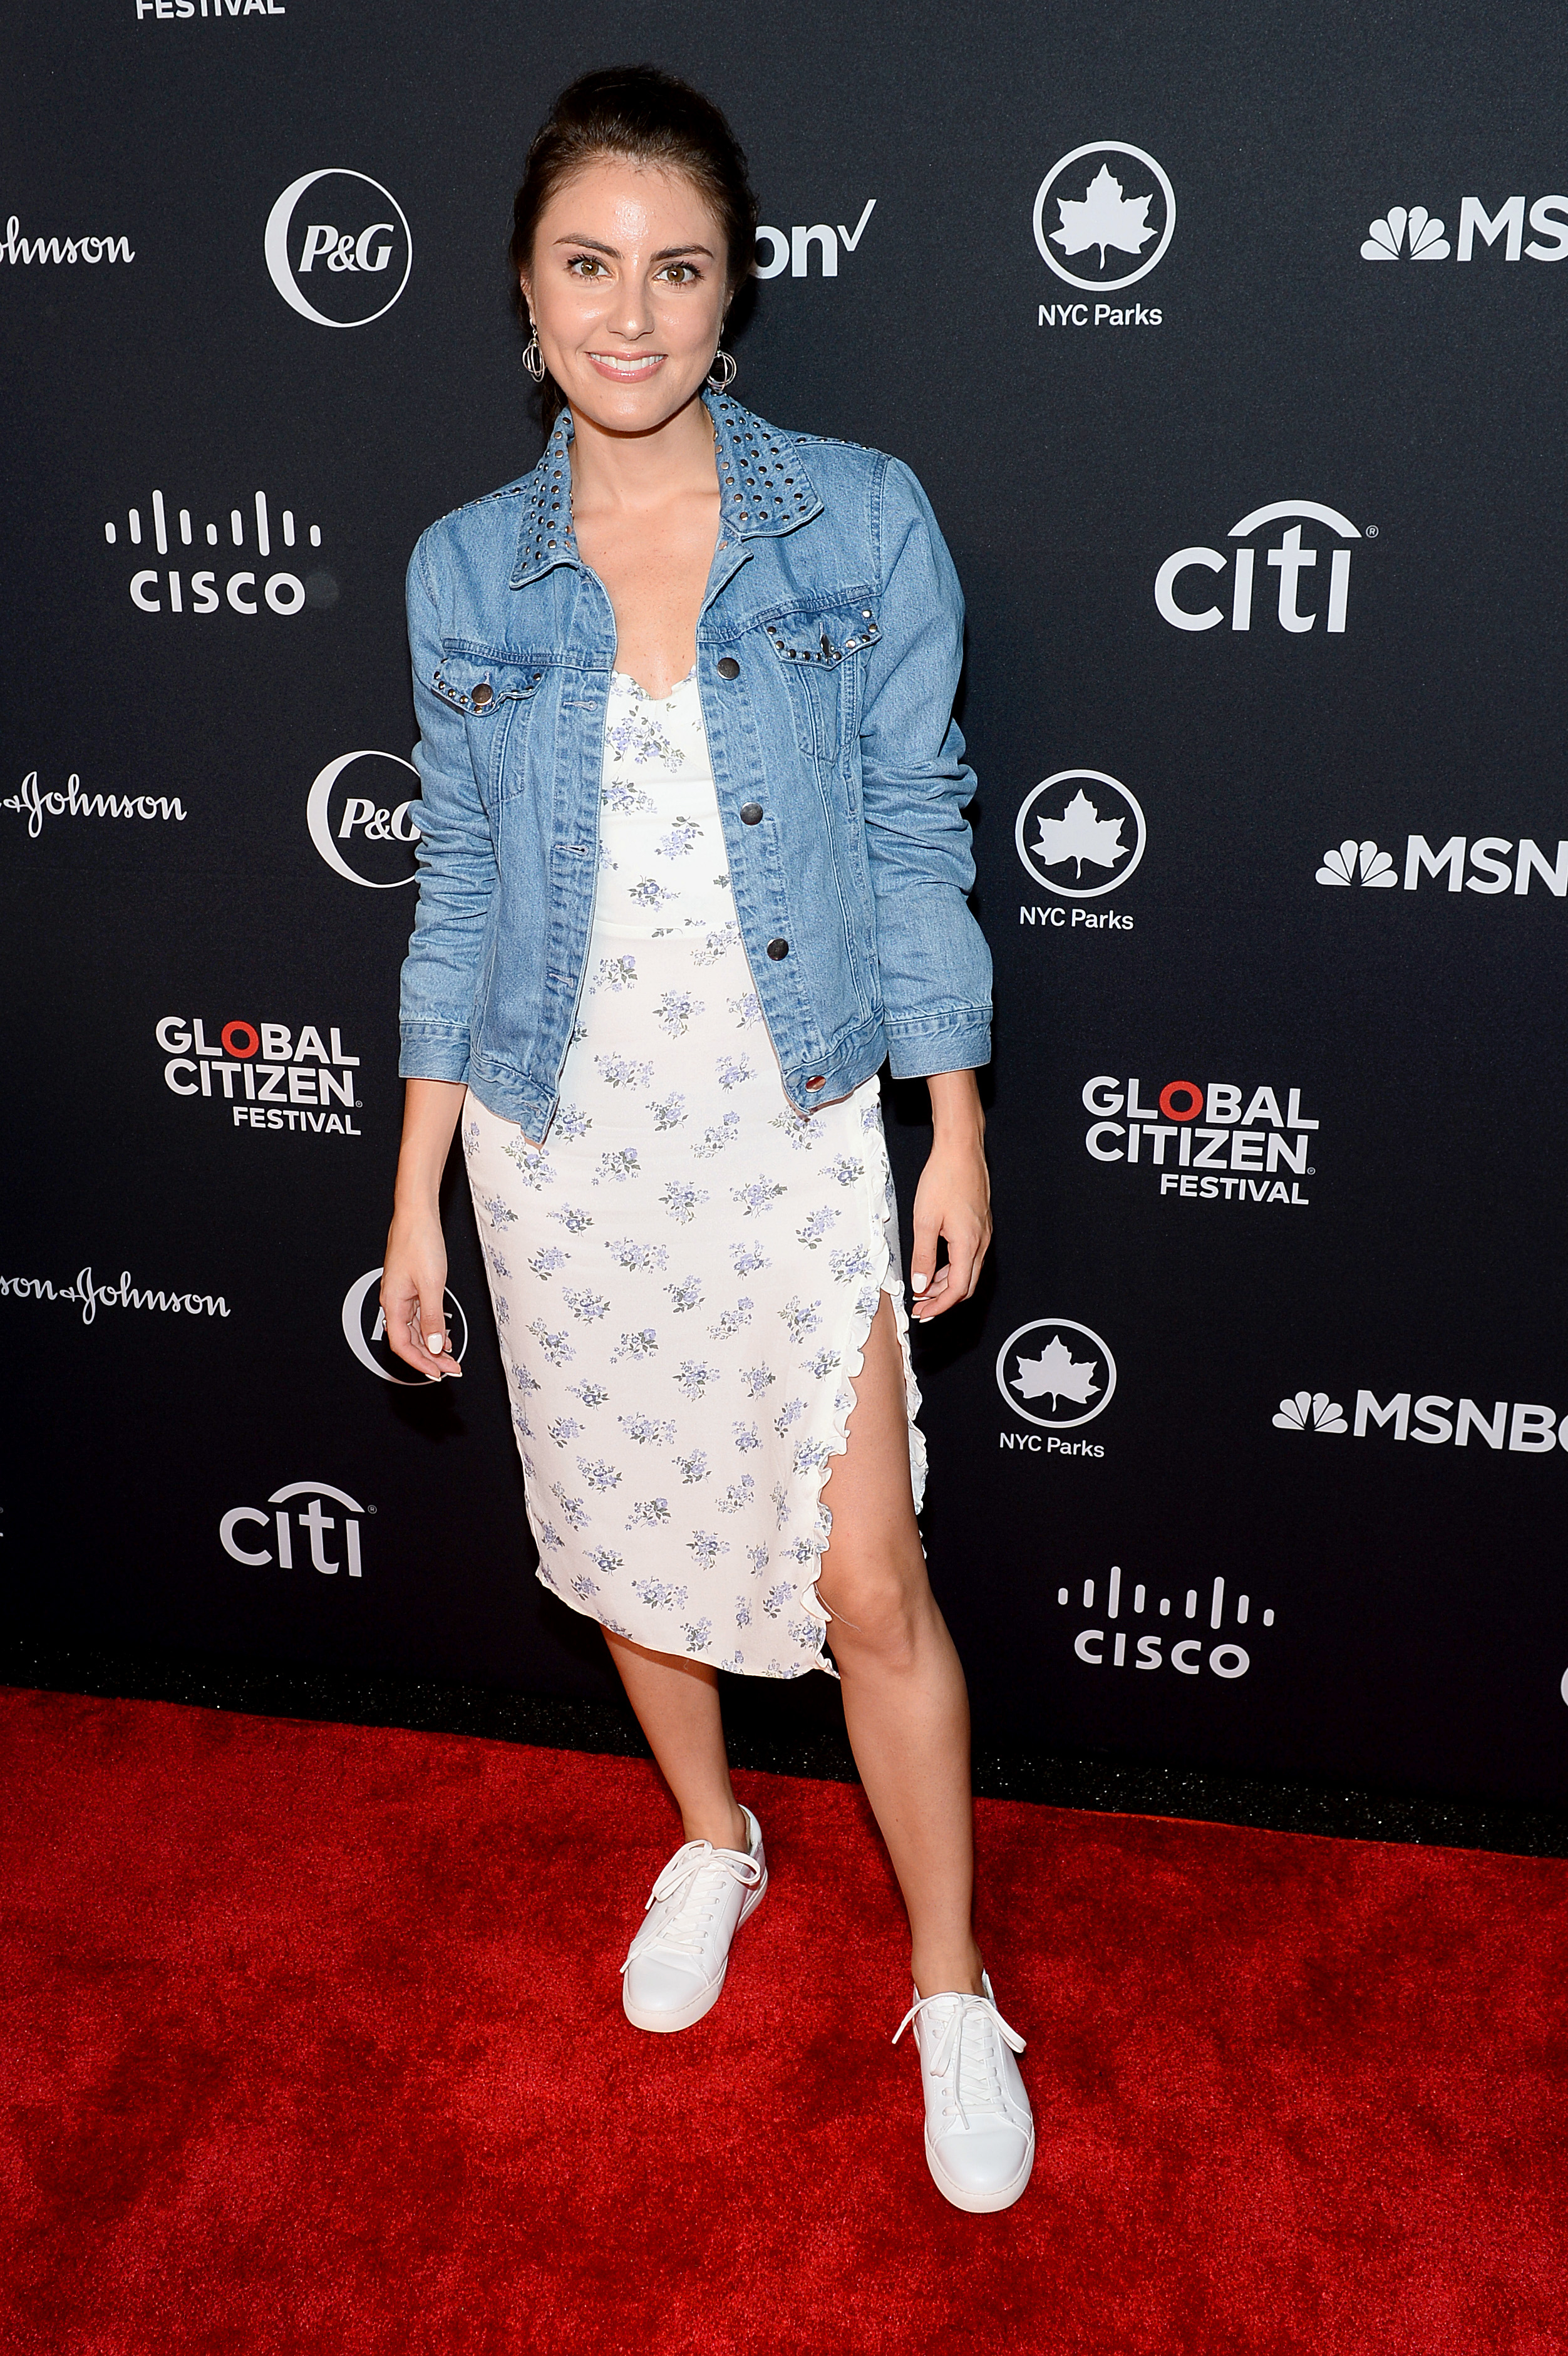 NEW YORK, NEW YORK - SEPTEMBER 28: Daniela Pierre Bravo attends the 2019 Global Citizen Festival: Power The Movement in Central Park on September 28, 2019 in New York City. (Photo by Noam Galai/Getty Images for Global Citizen)